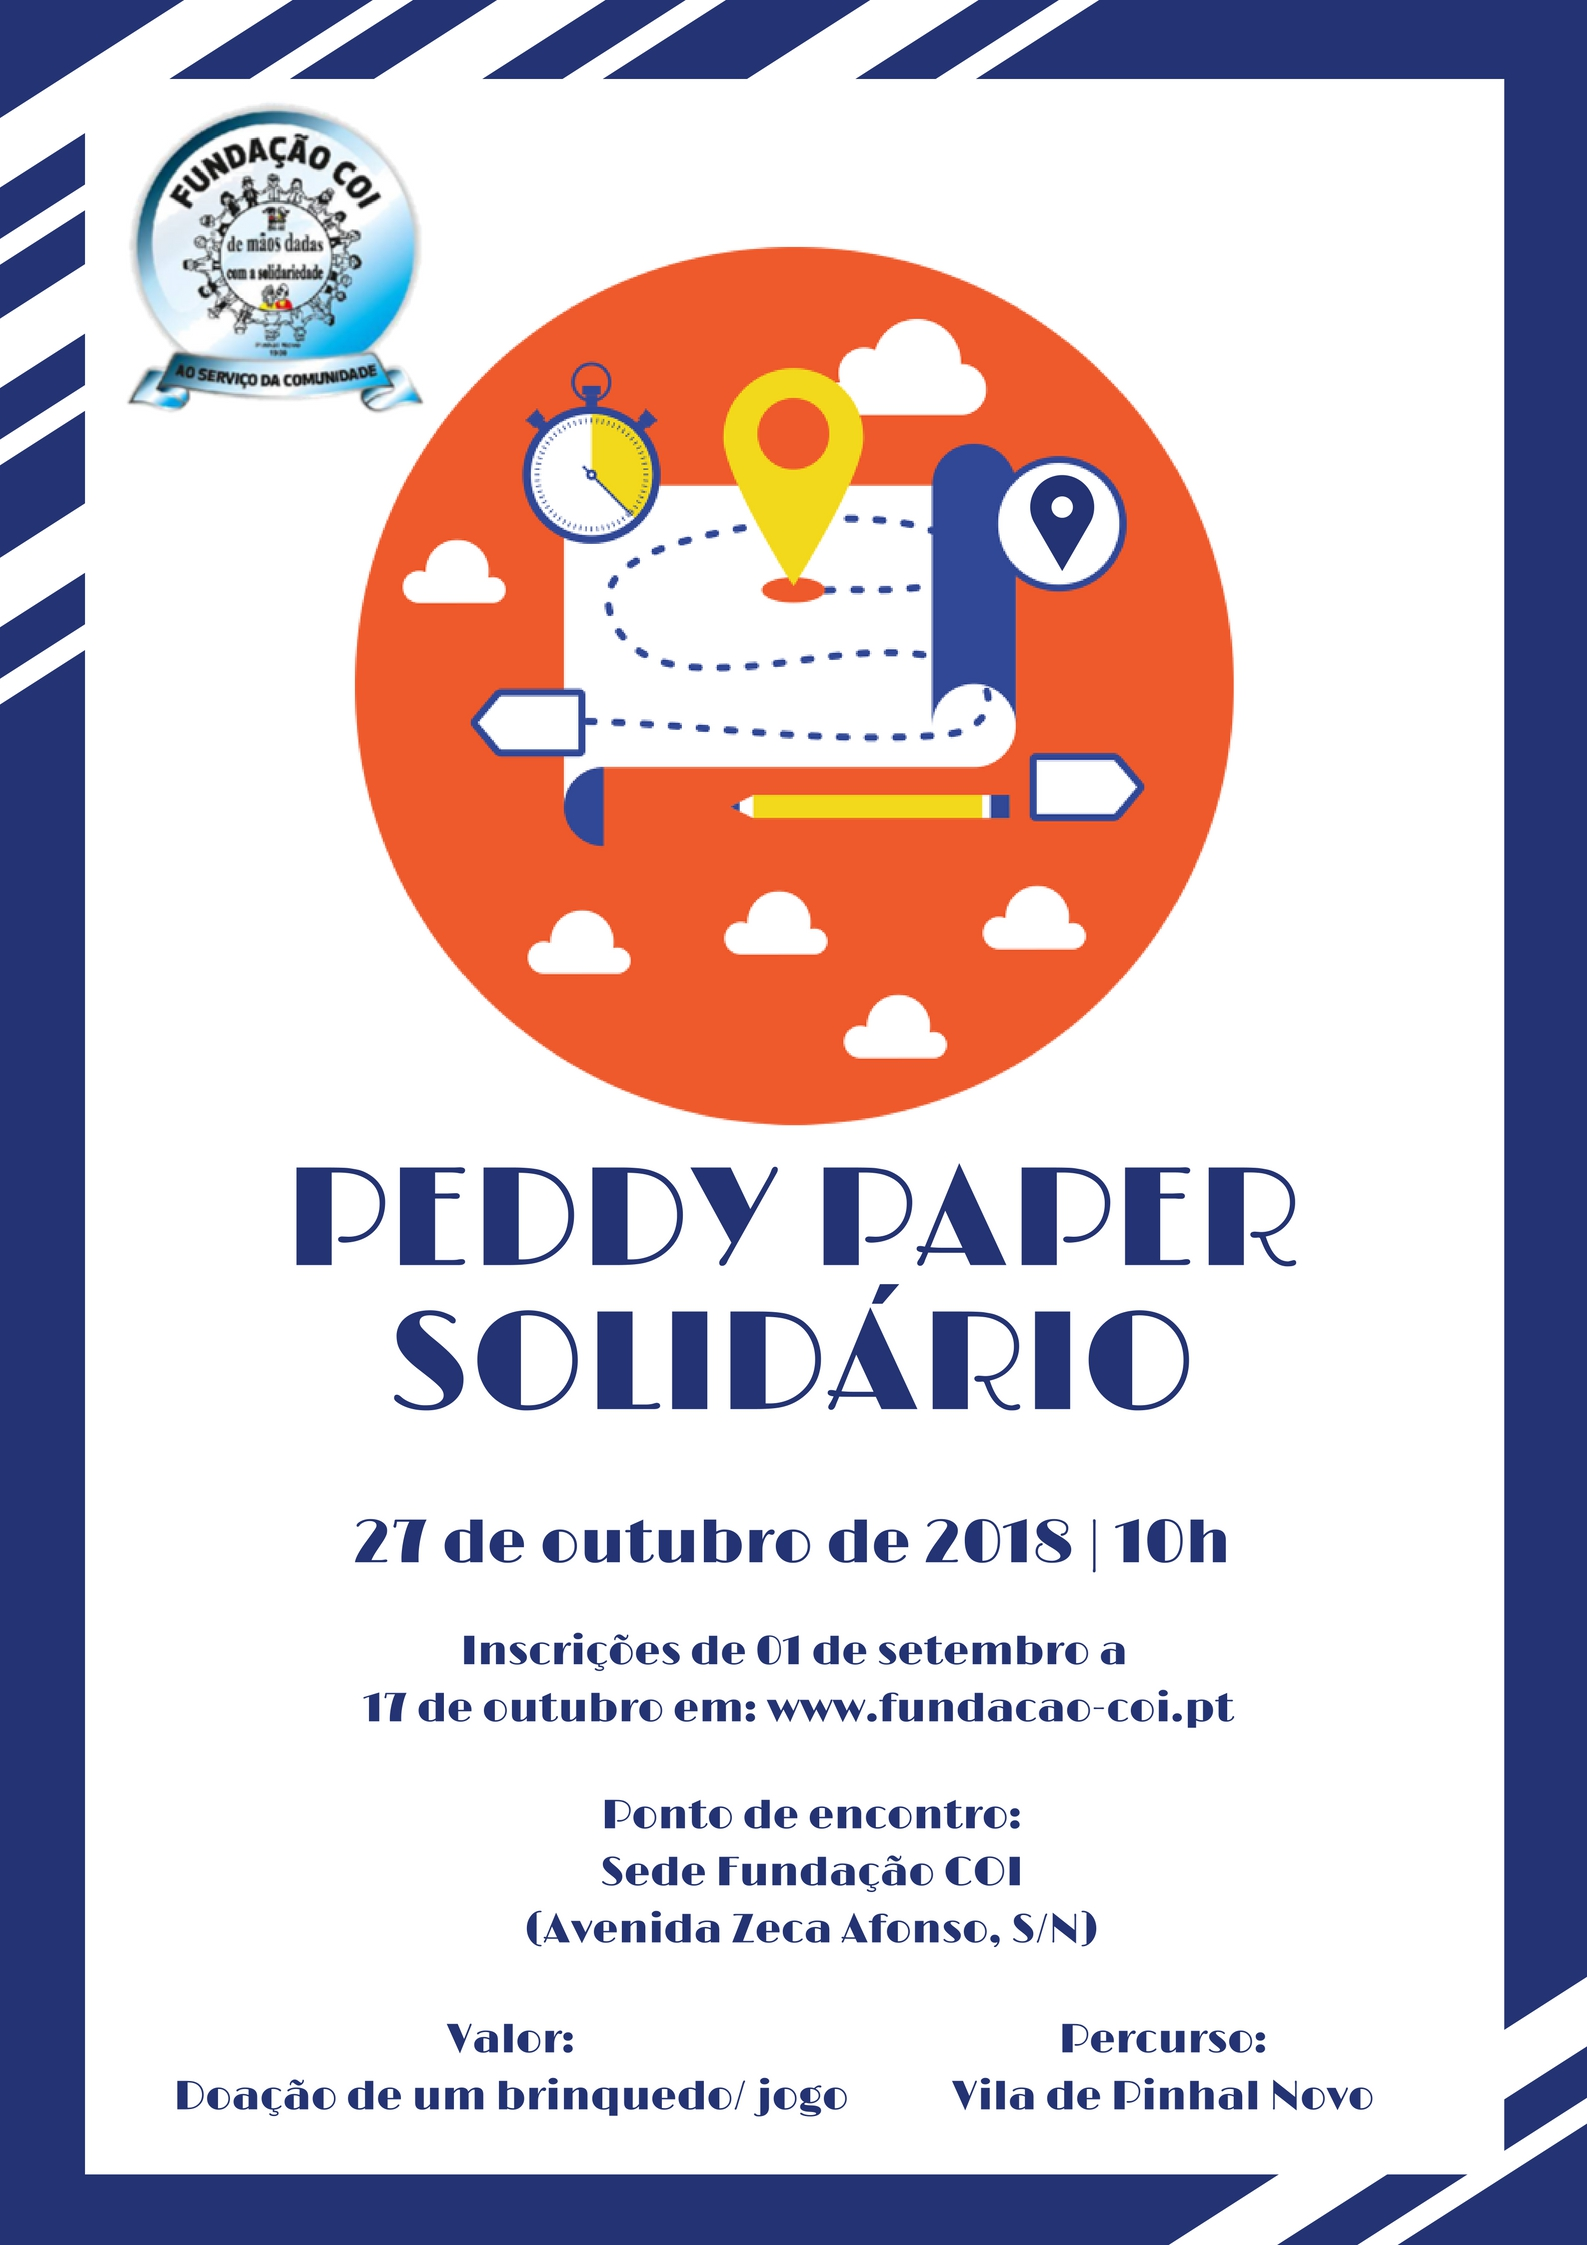 Peddy-paper-solidario cartaz